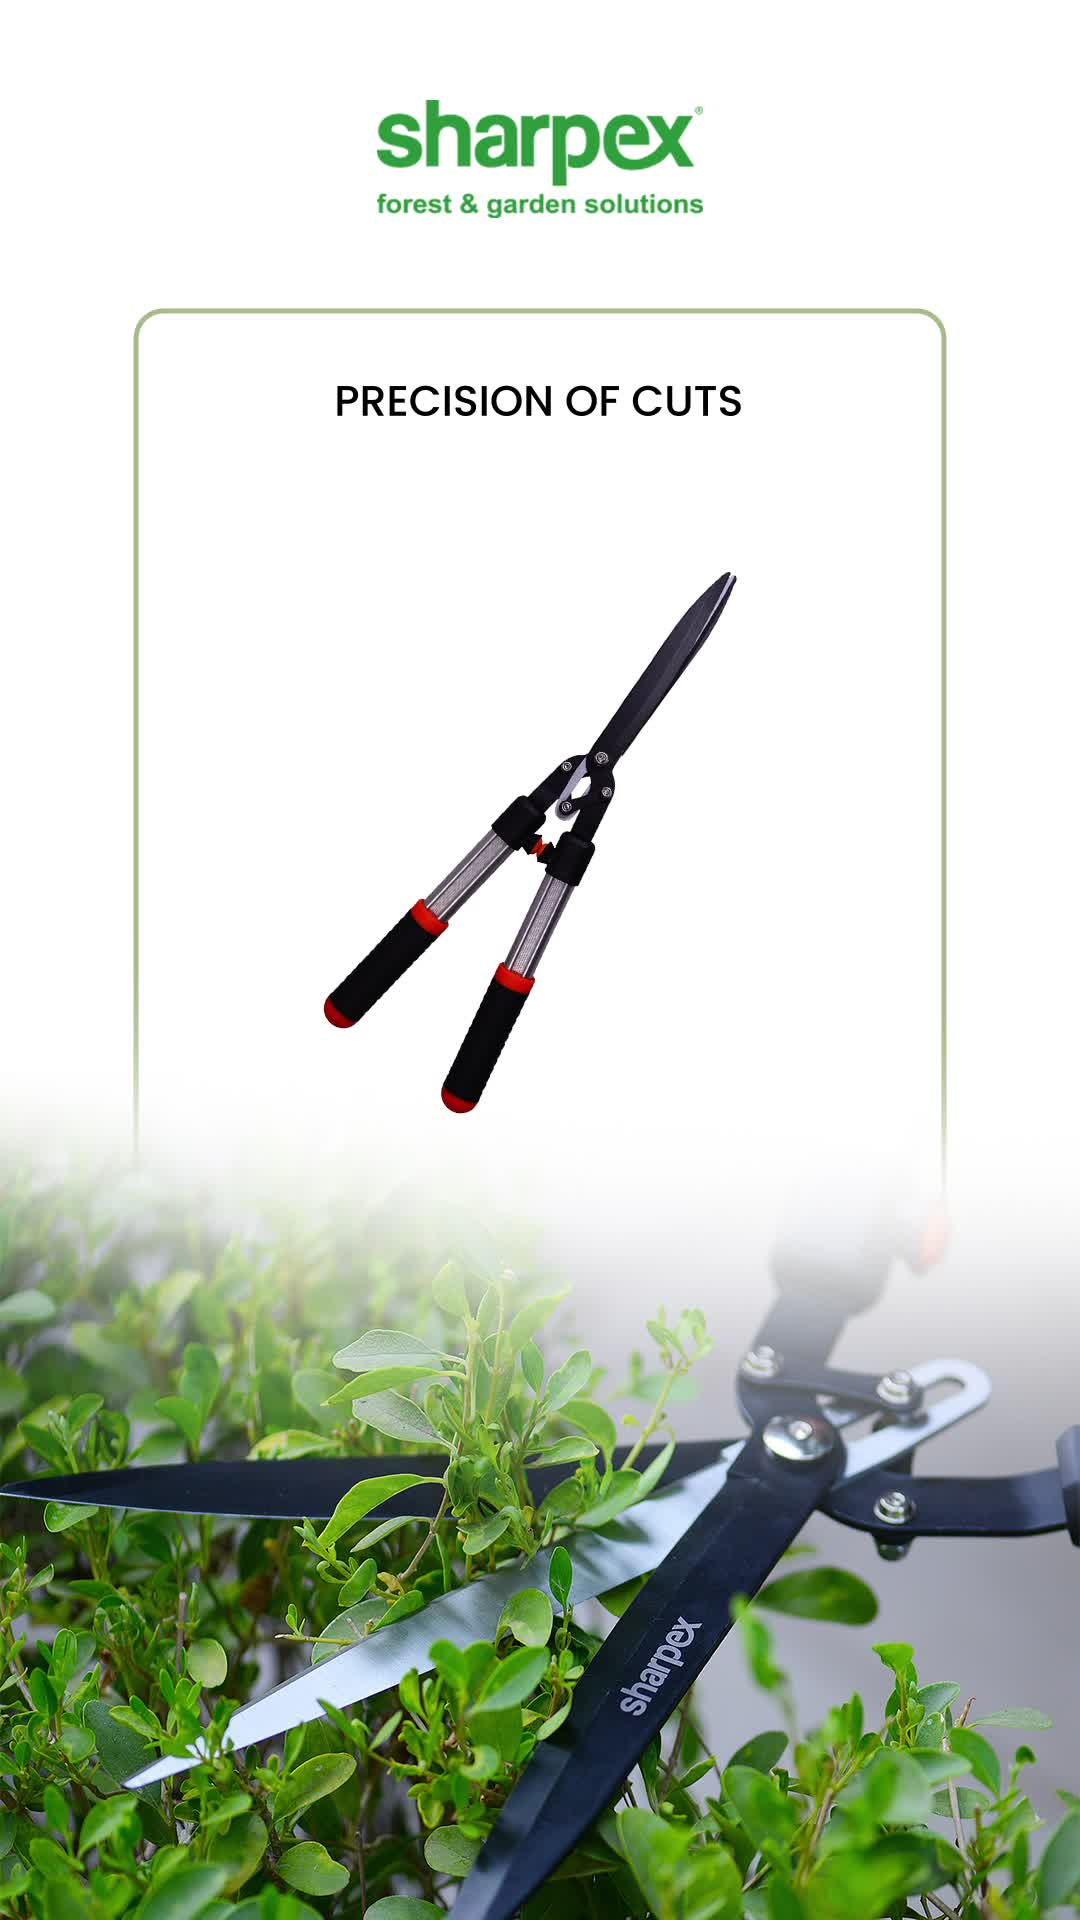 #Sharpex3BladeHedgeShear Is Ideal Tool Used For Trimming, Shaping Shrub, Decorative Plants. 3 Blade Hedge Shear feature precision blades each designed to make trimming shrubs easier. Get a clean and easy cut on everything from your tiniest twigs to your brute branches.  #GardeningAccessories #GardeningTools #ModernGardeningTools #GardeningProducts #GardenProducts #Sharpex #SharpexIndia #SharpexSecateurs